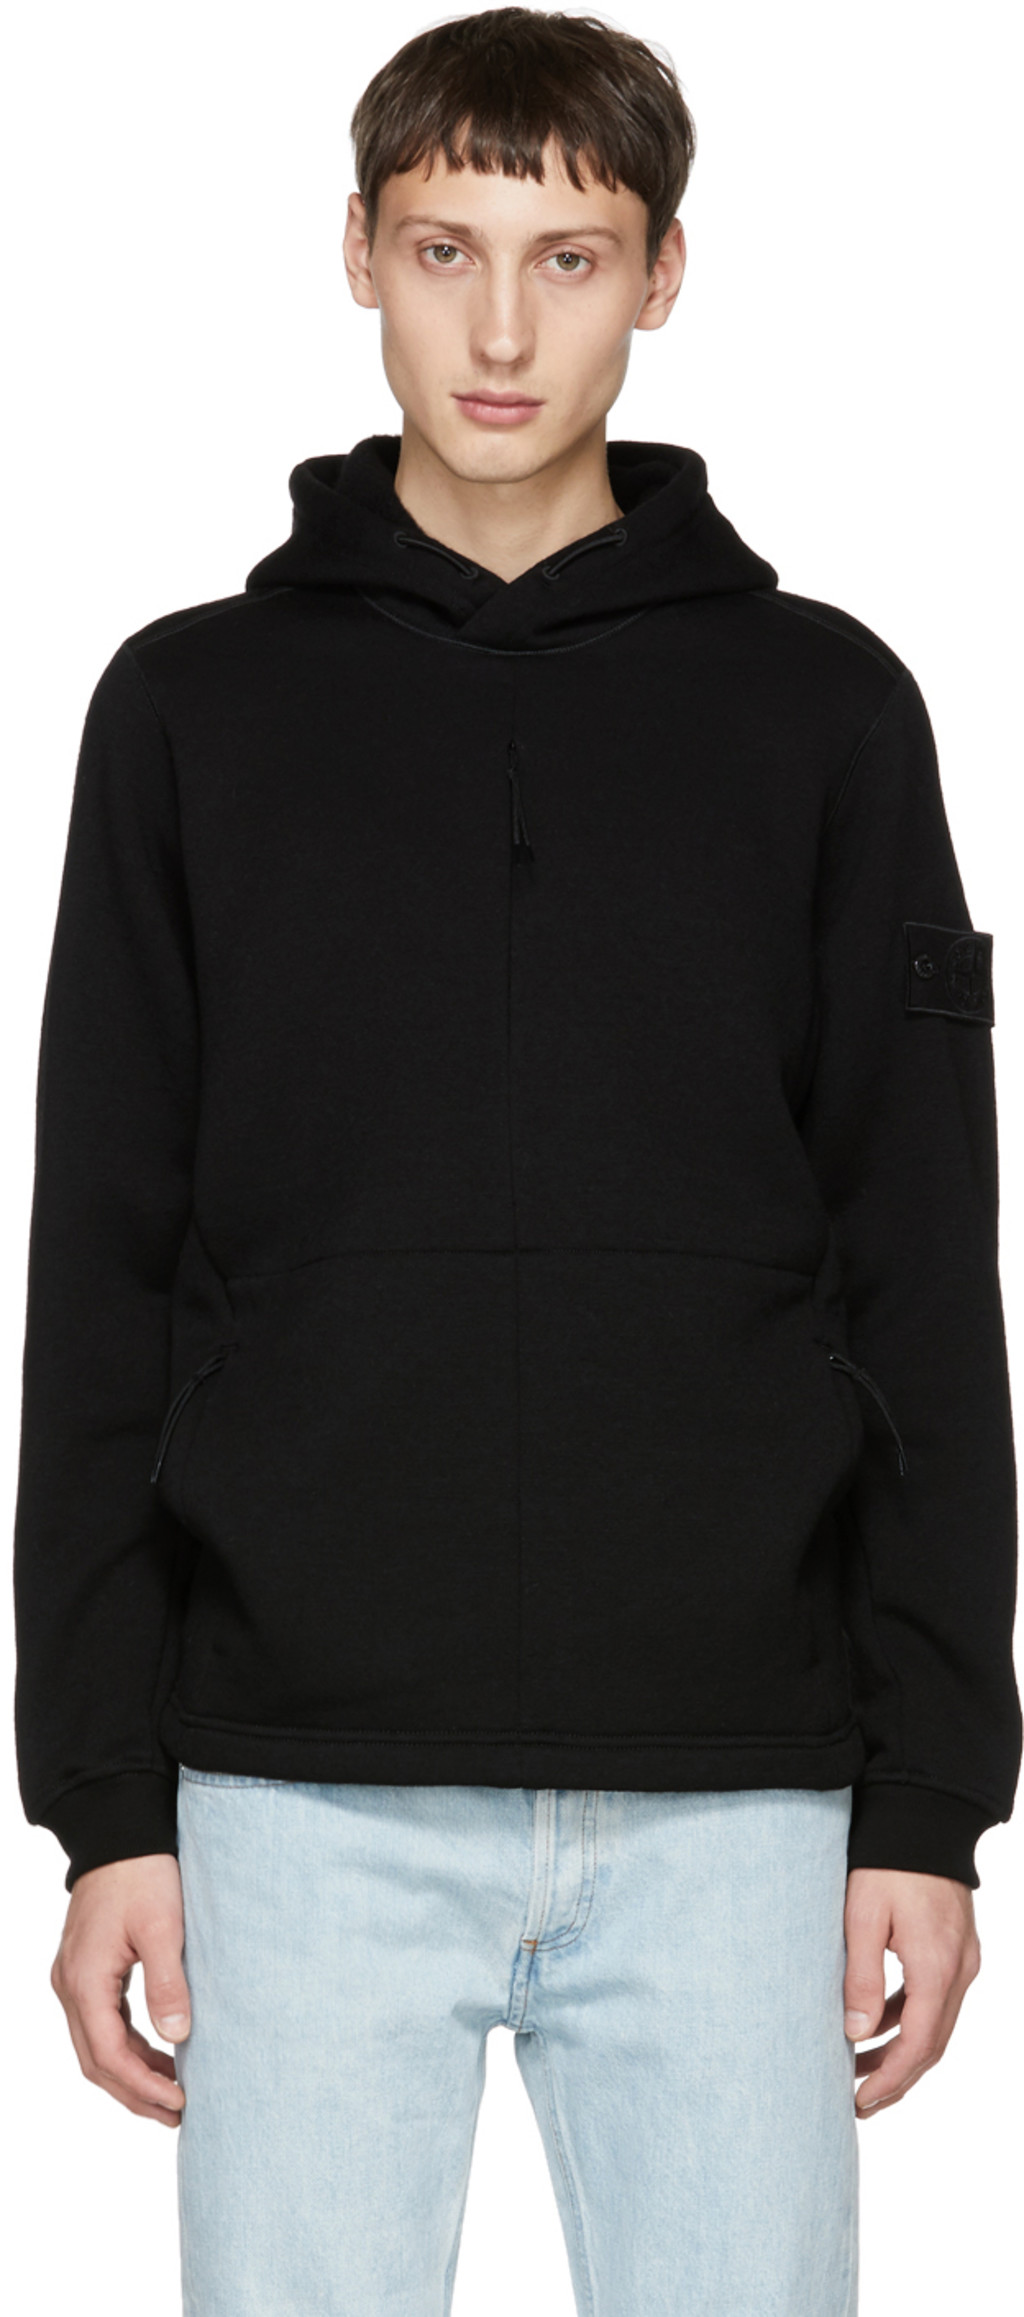 info for e0108 c8293 Men Collection Stone For Ssense Fw18 Island Canada aAAPw6